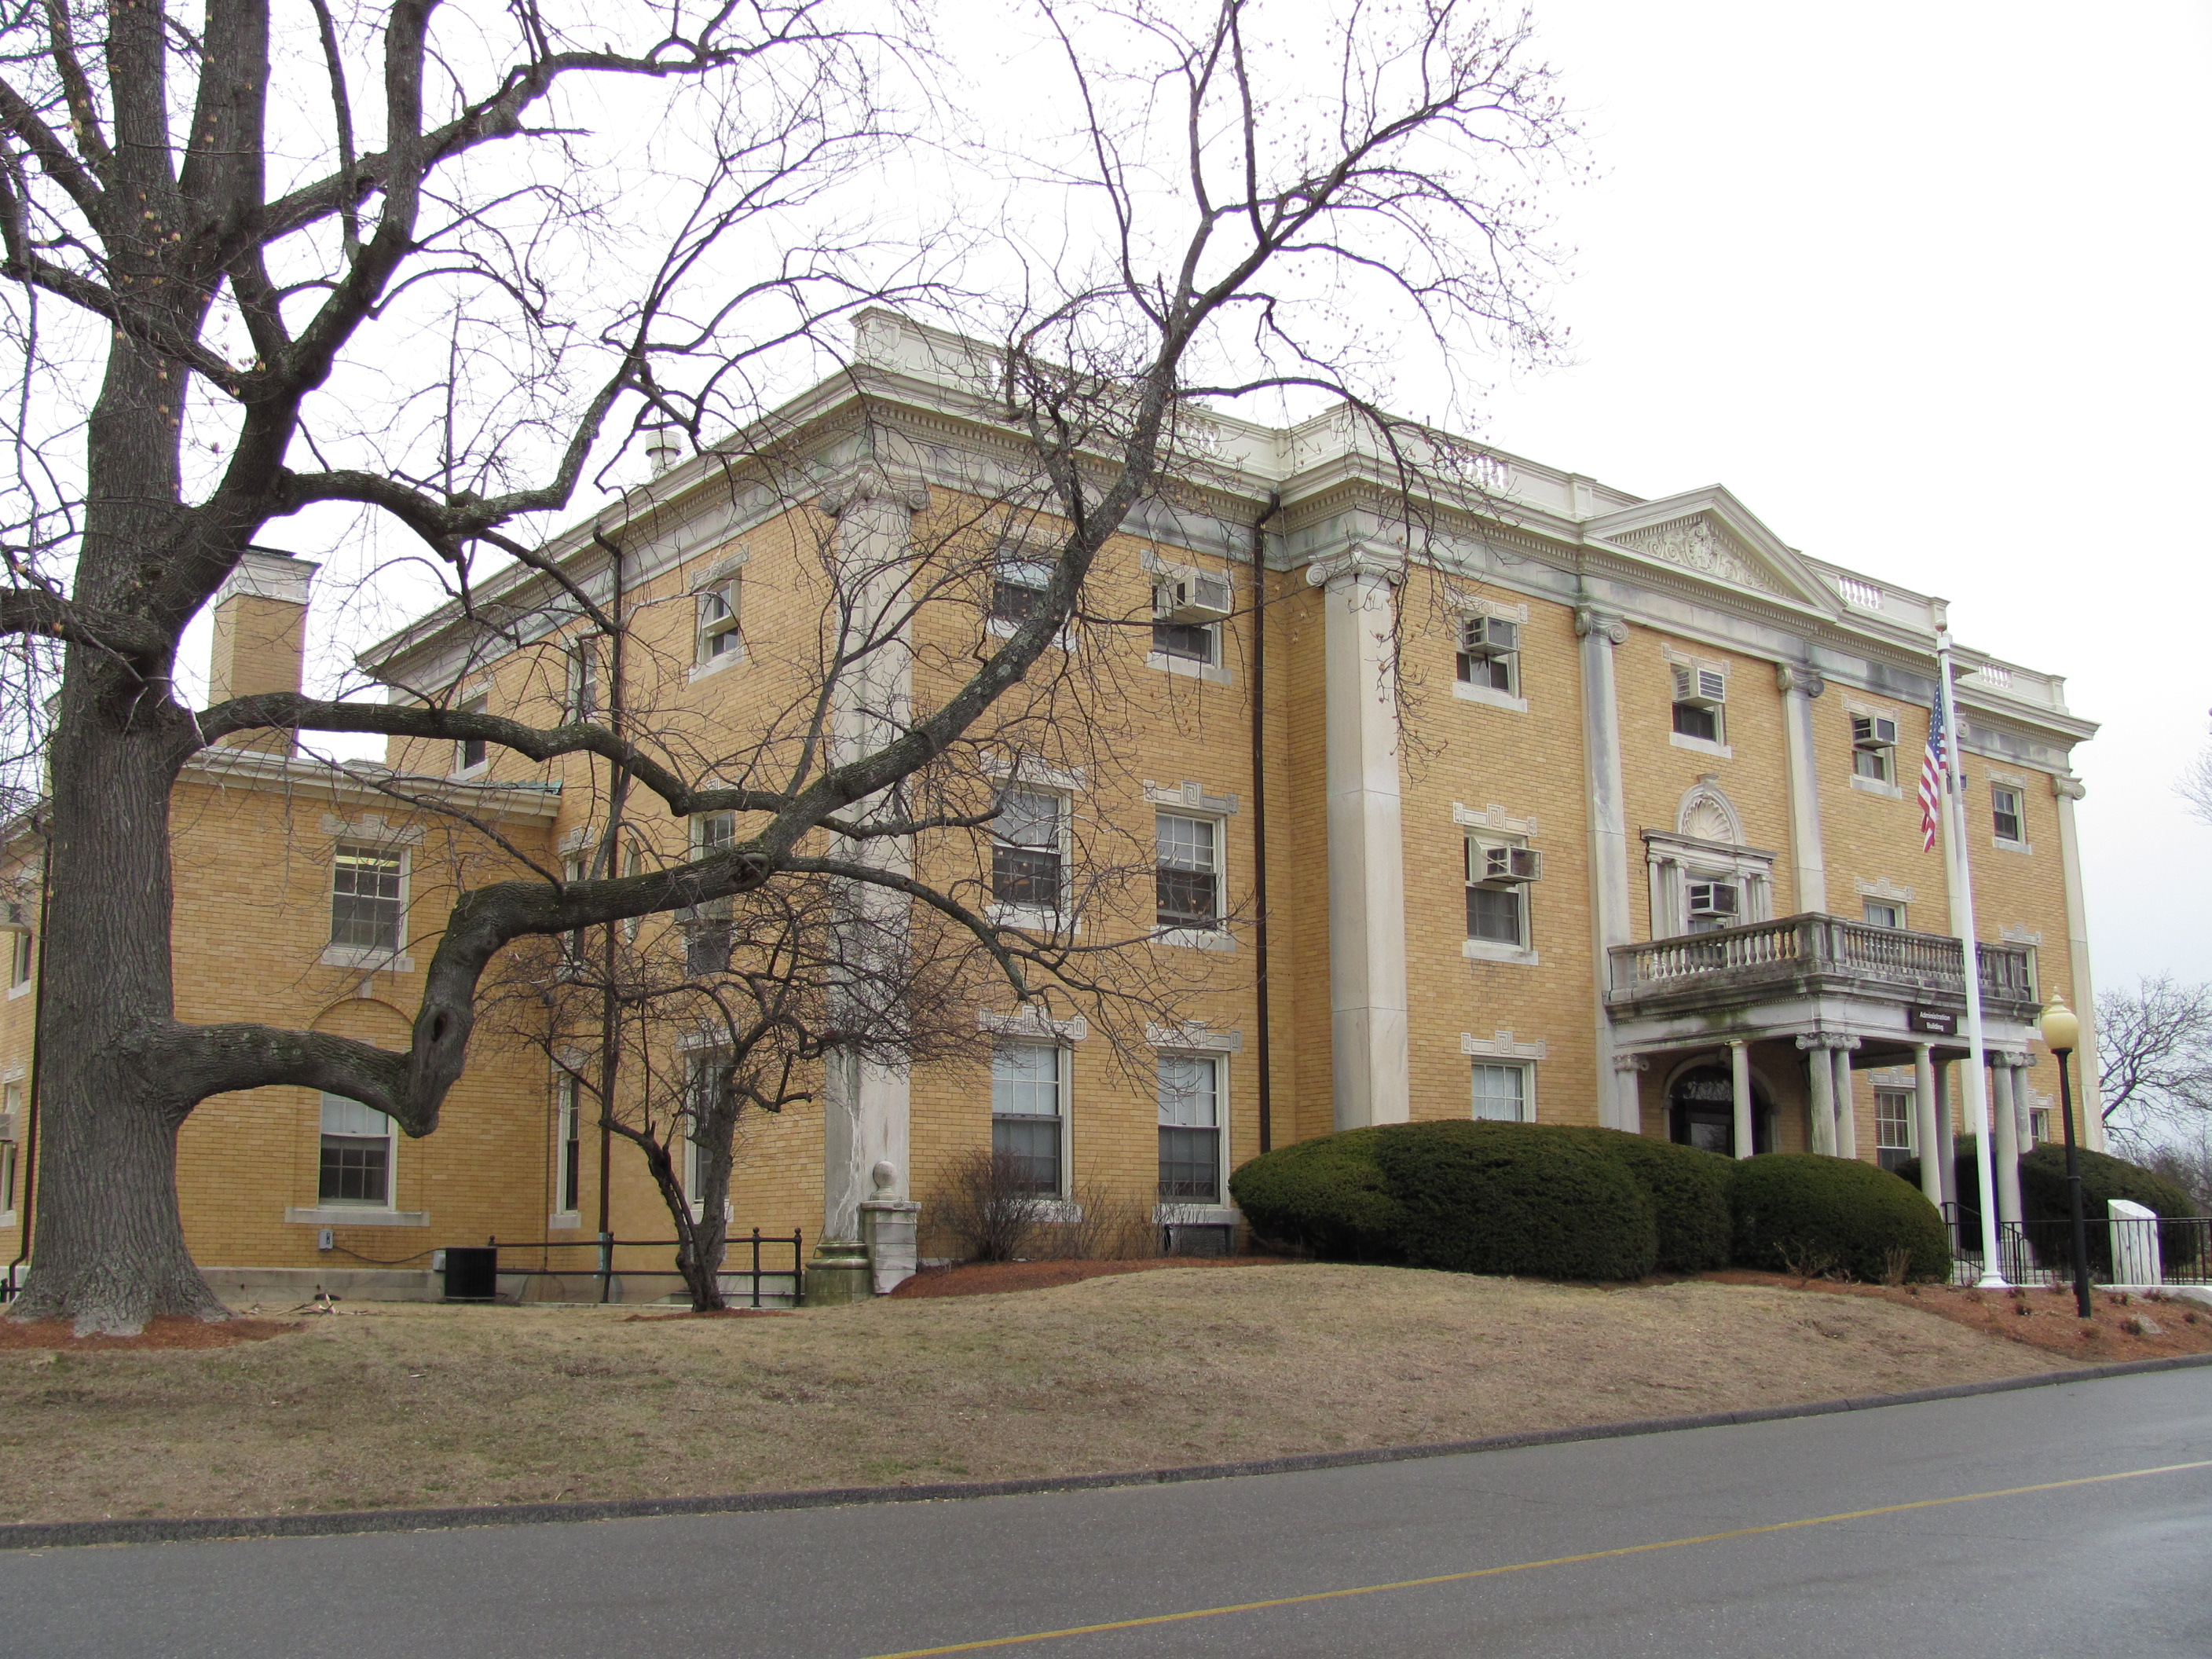 File:Administration Building, McLean Hospital, Belmont MA.jpg - Wikimedia  Commons